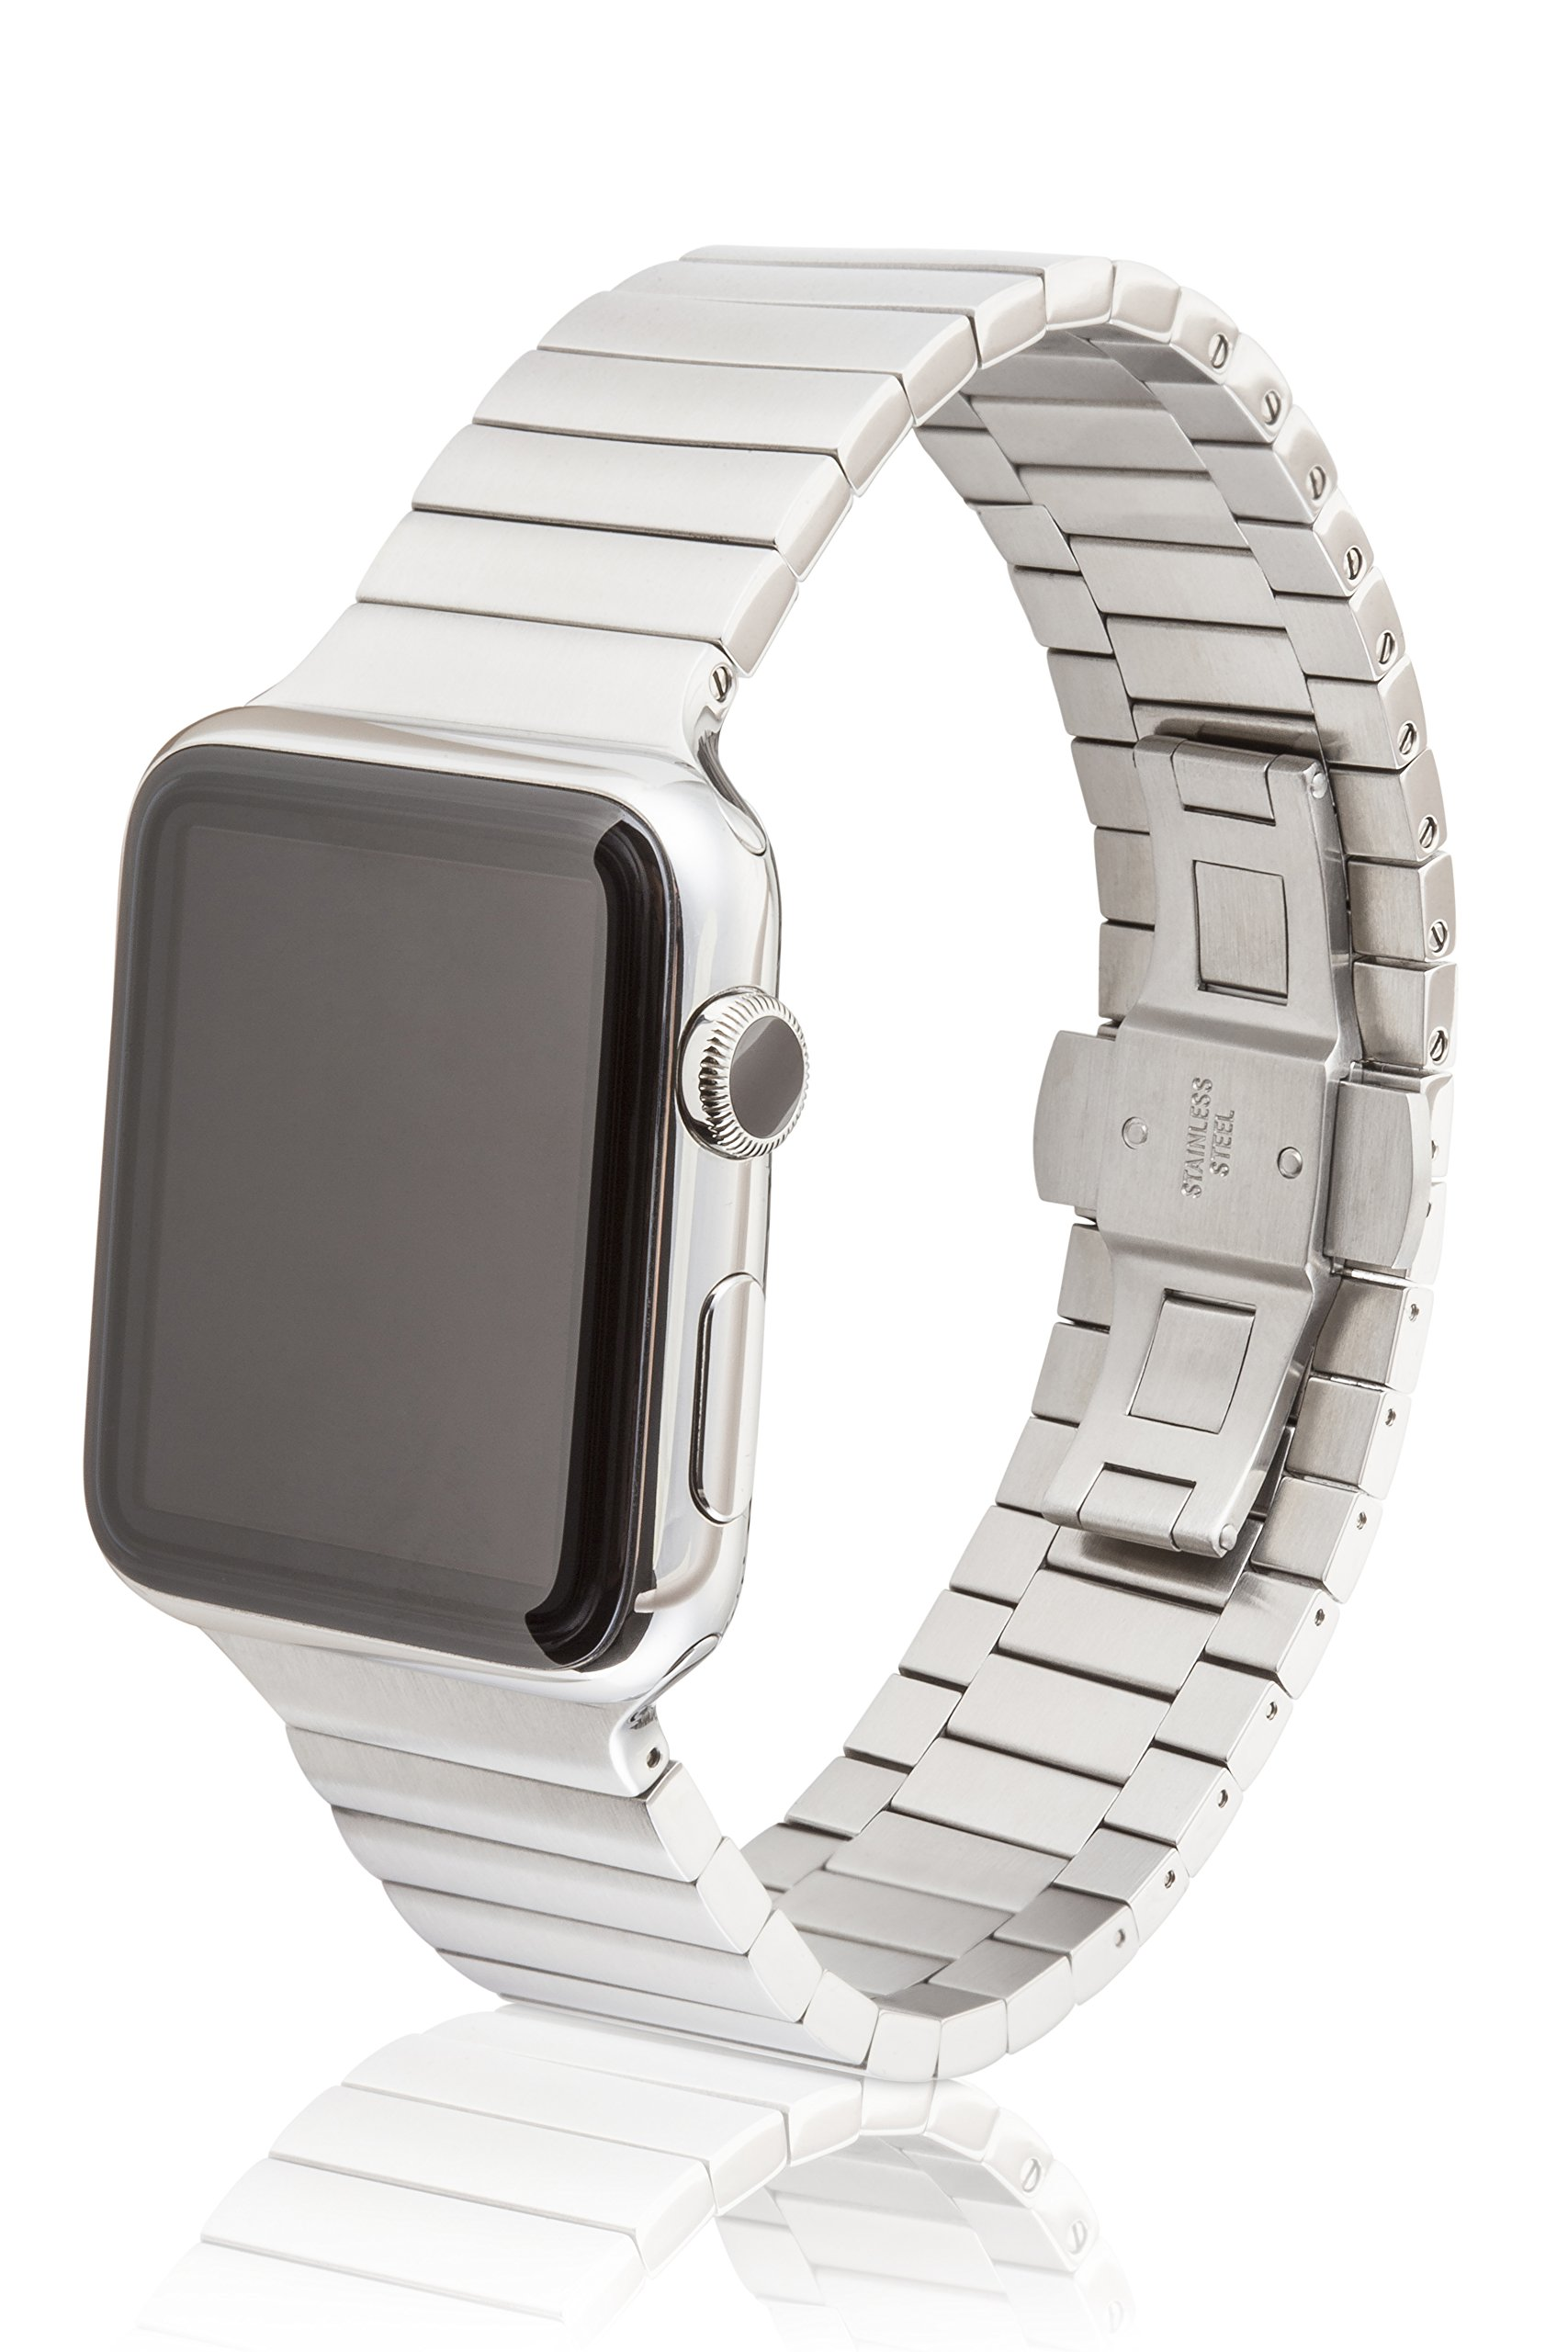 38mm JUUK Revo Premium Apple Watch band, made with Swiss quality using only the highest grade solid 316L stainless steel with a satin brushed finish and solid steel butterfly deployant buckle